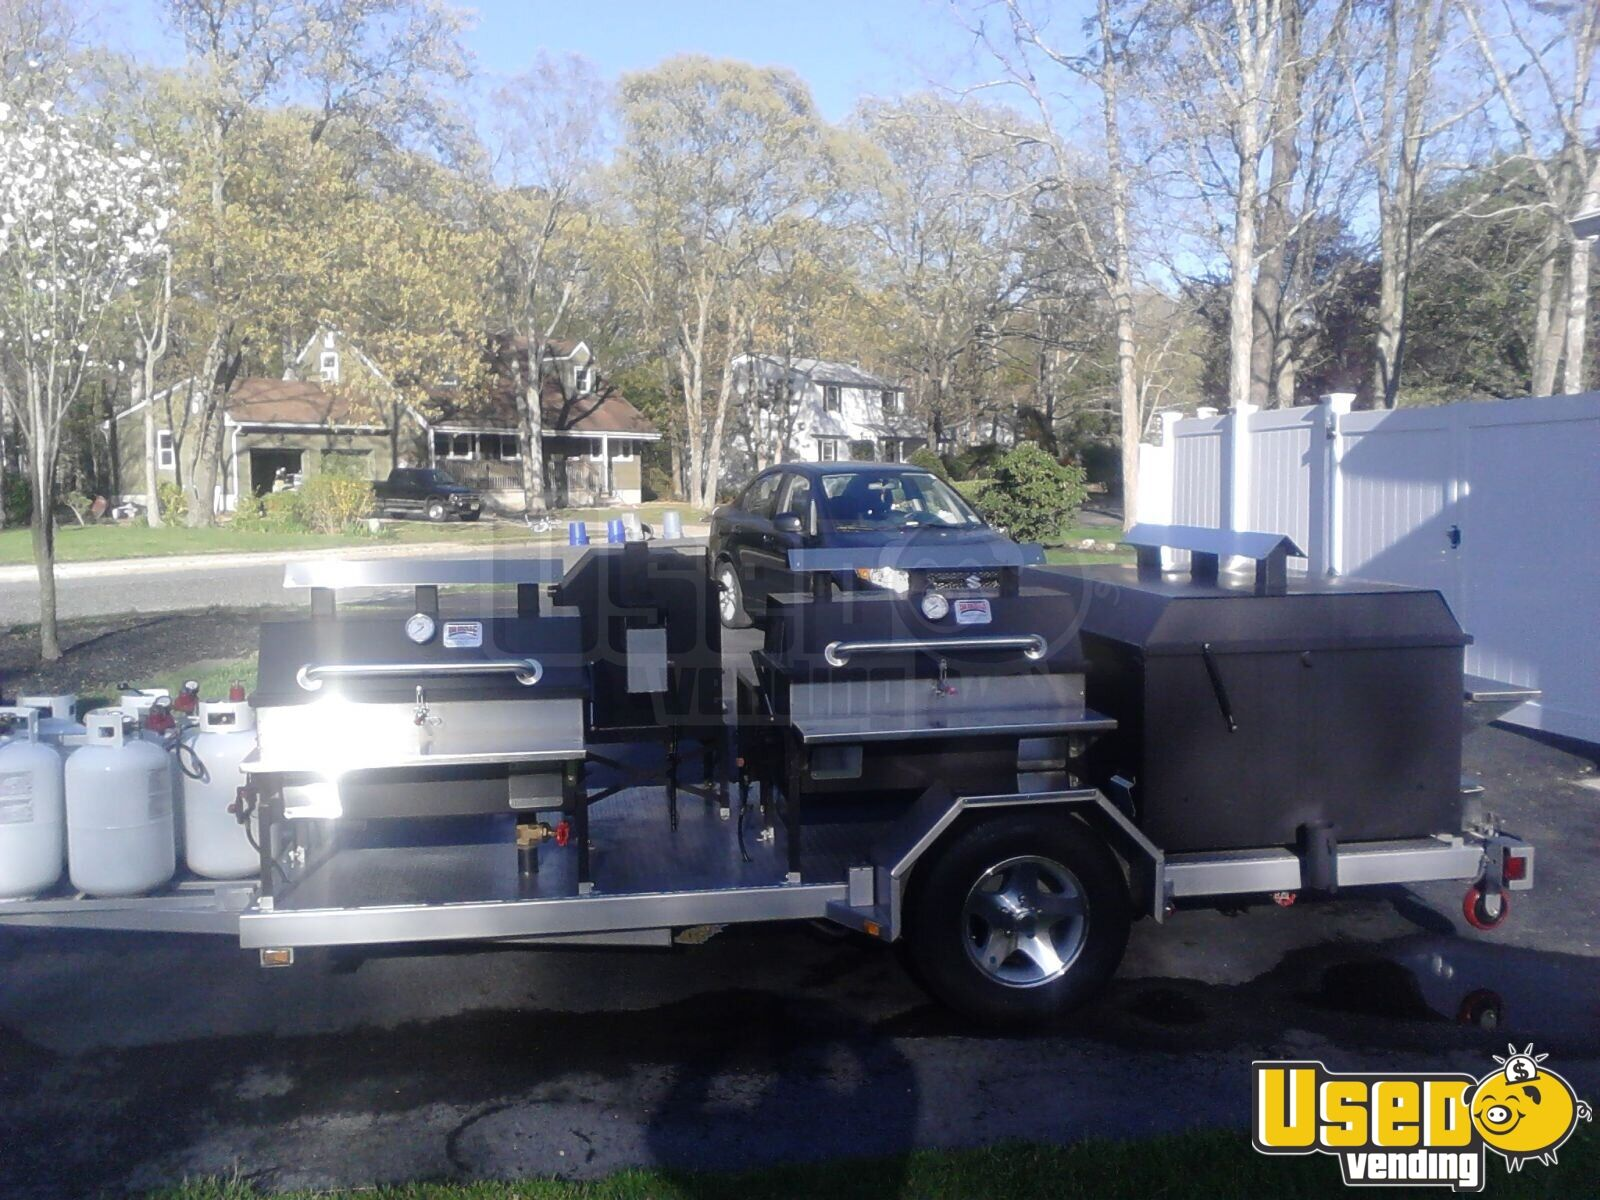 2014 Bq Grills Open Bbq Smoker Trailer Stovetop New Jersey for Sale - 3